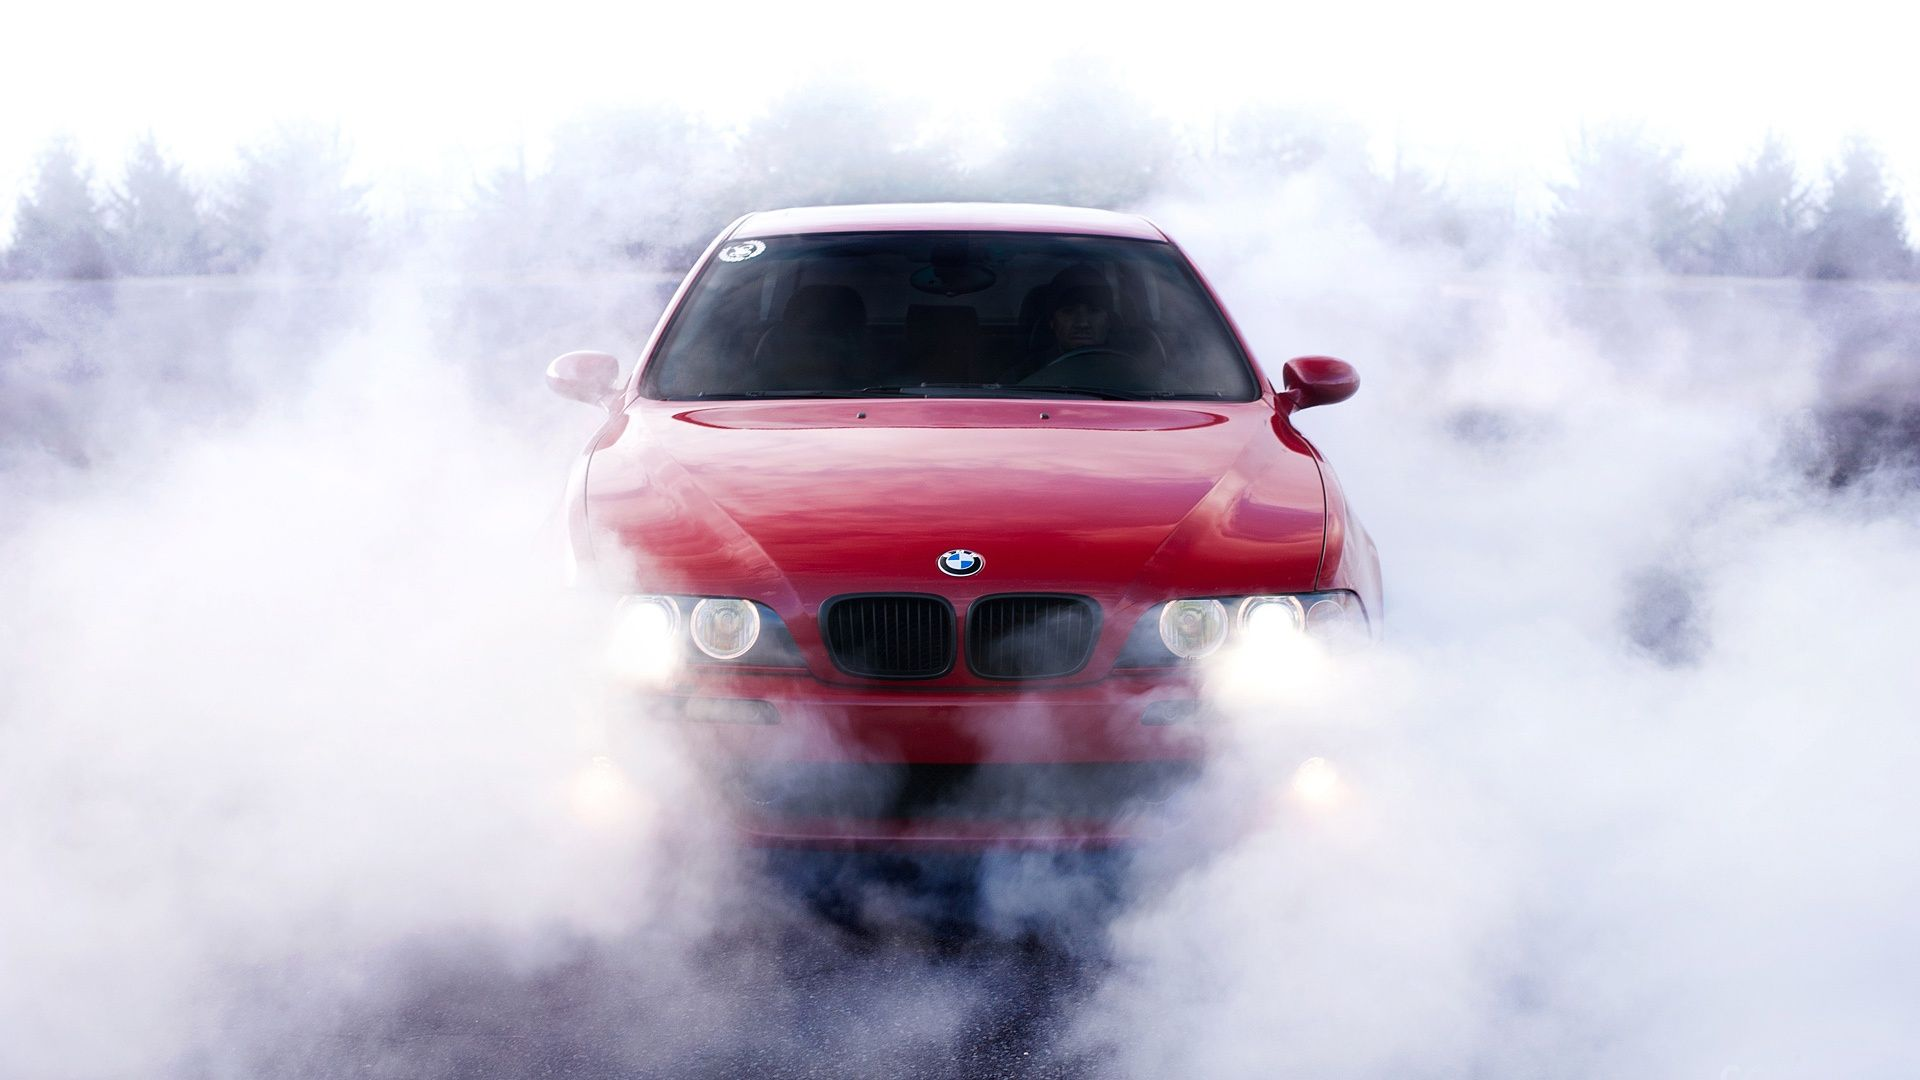 Free Download Pure 100 Bmw Hd Wallpapers Latest Photoshoots Hot